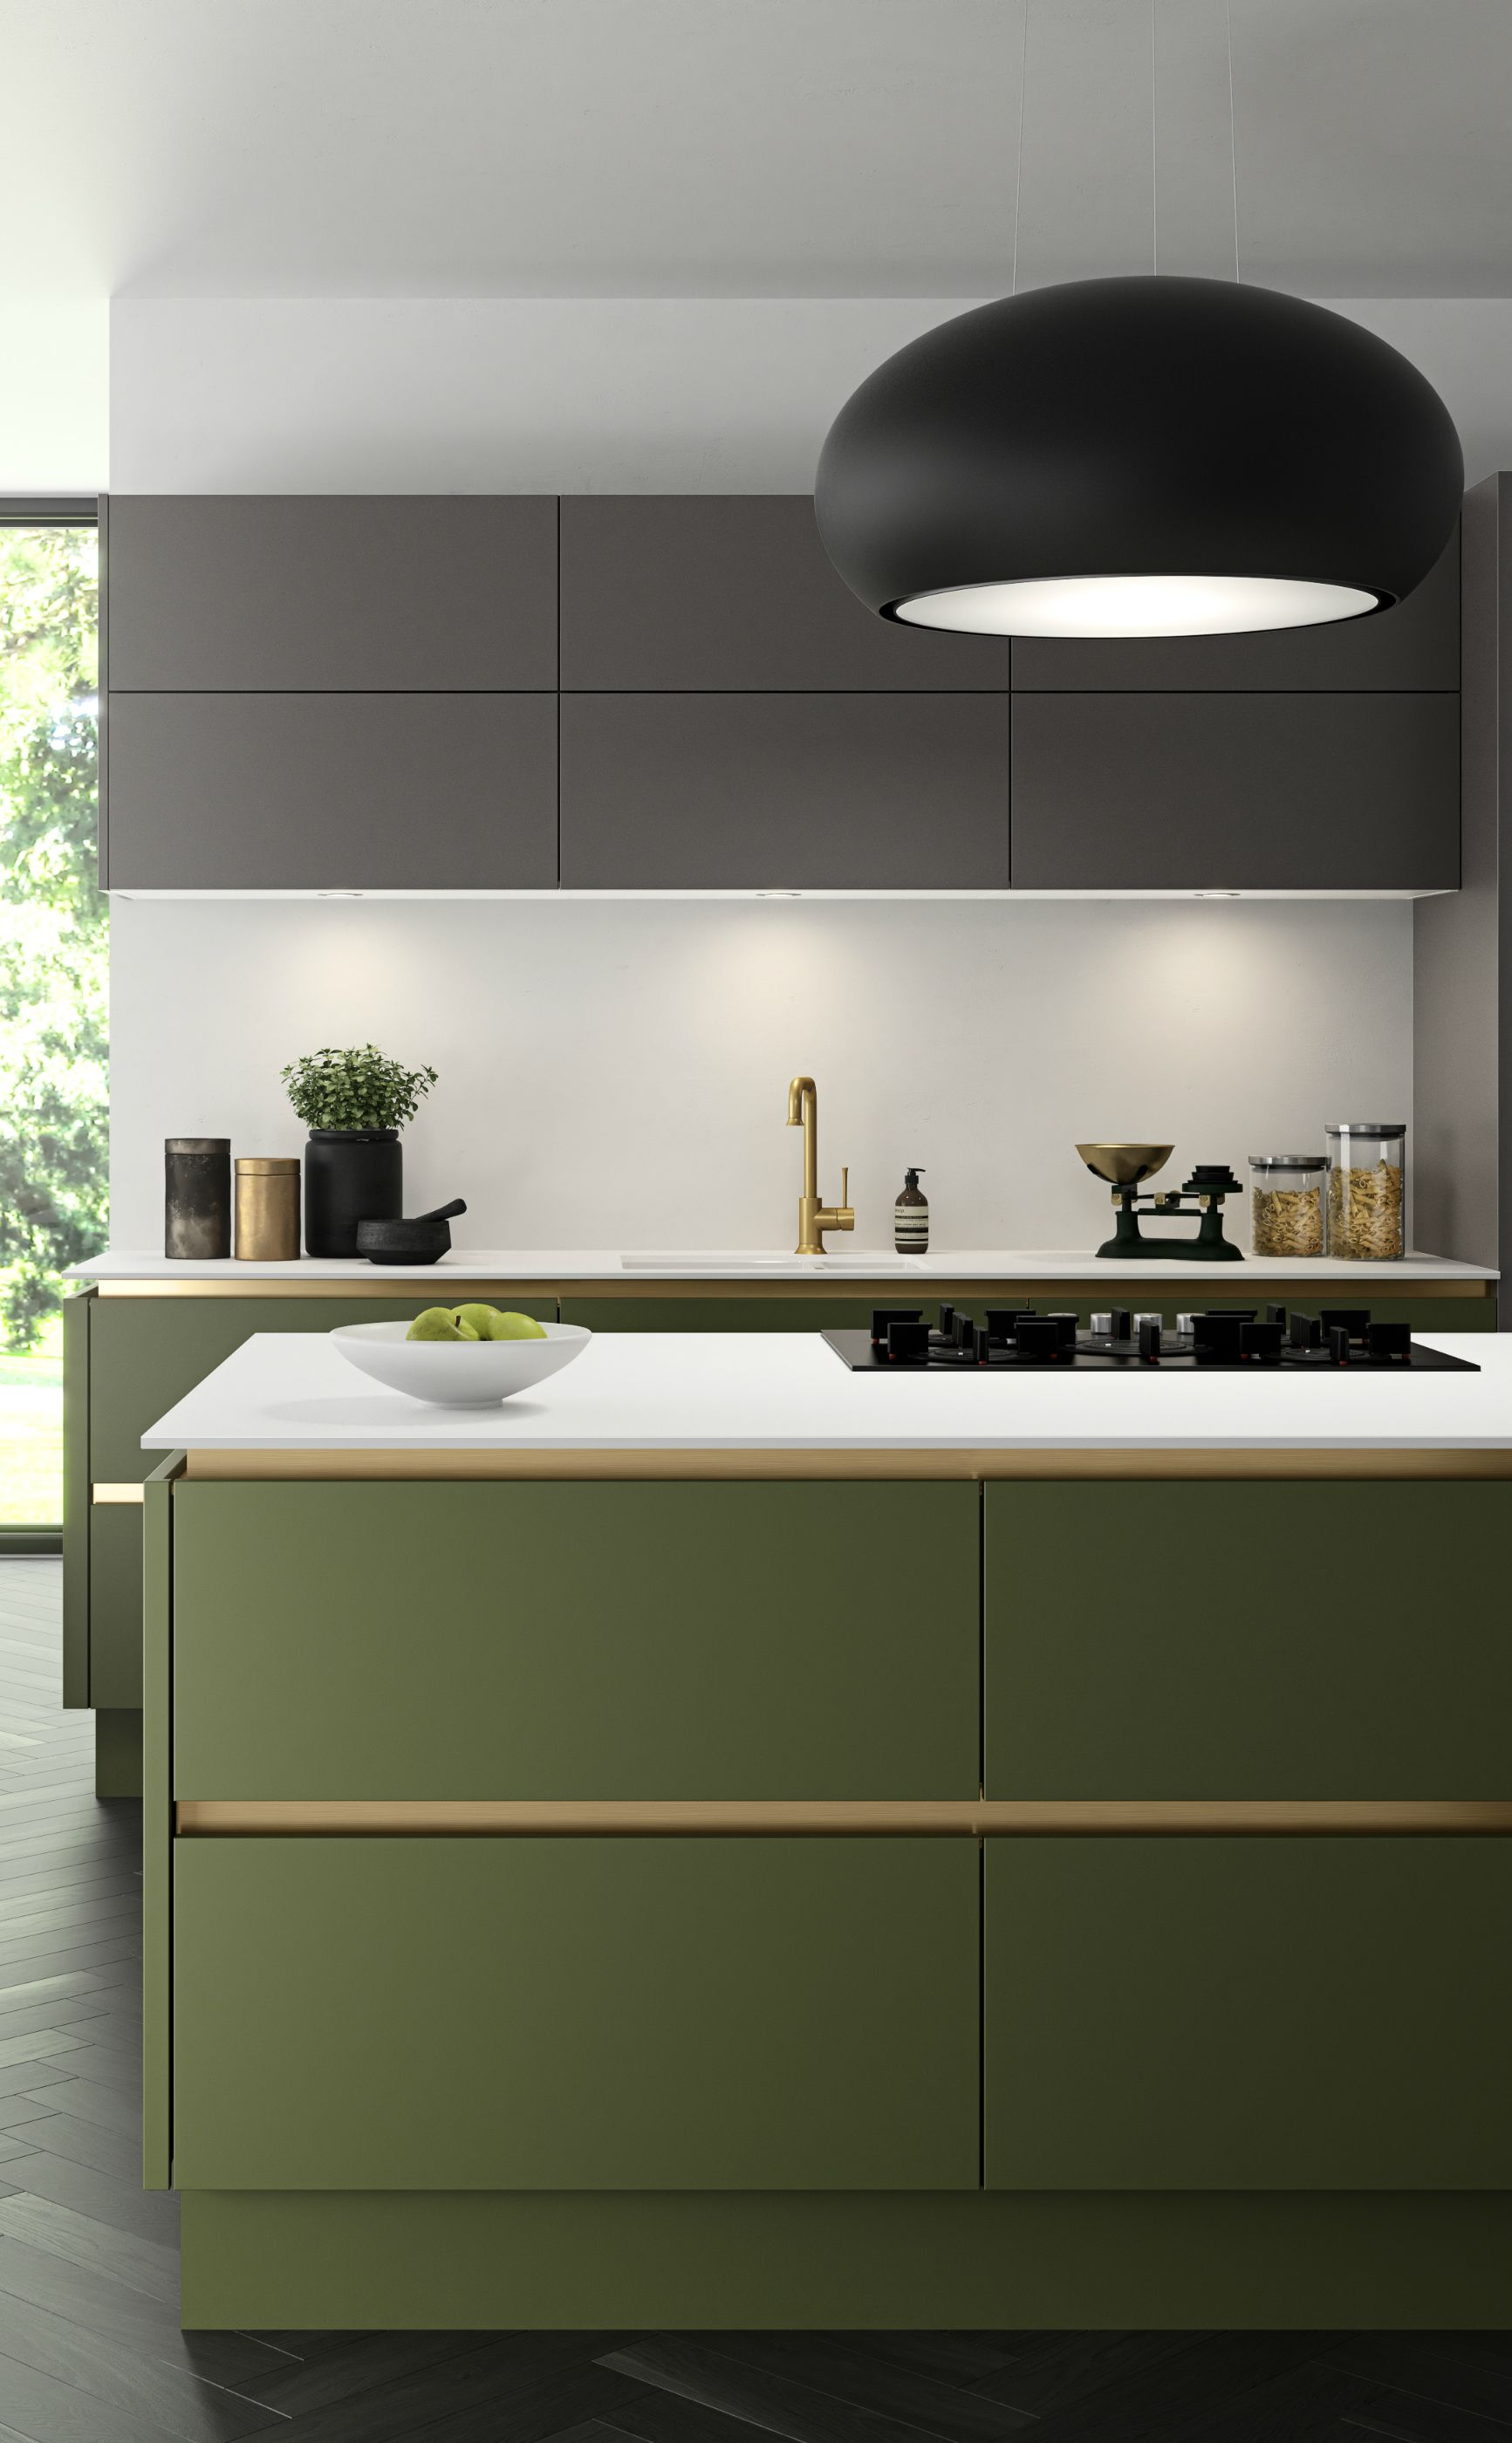 Pin by Laura Strong on Interiors Kitchen design color